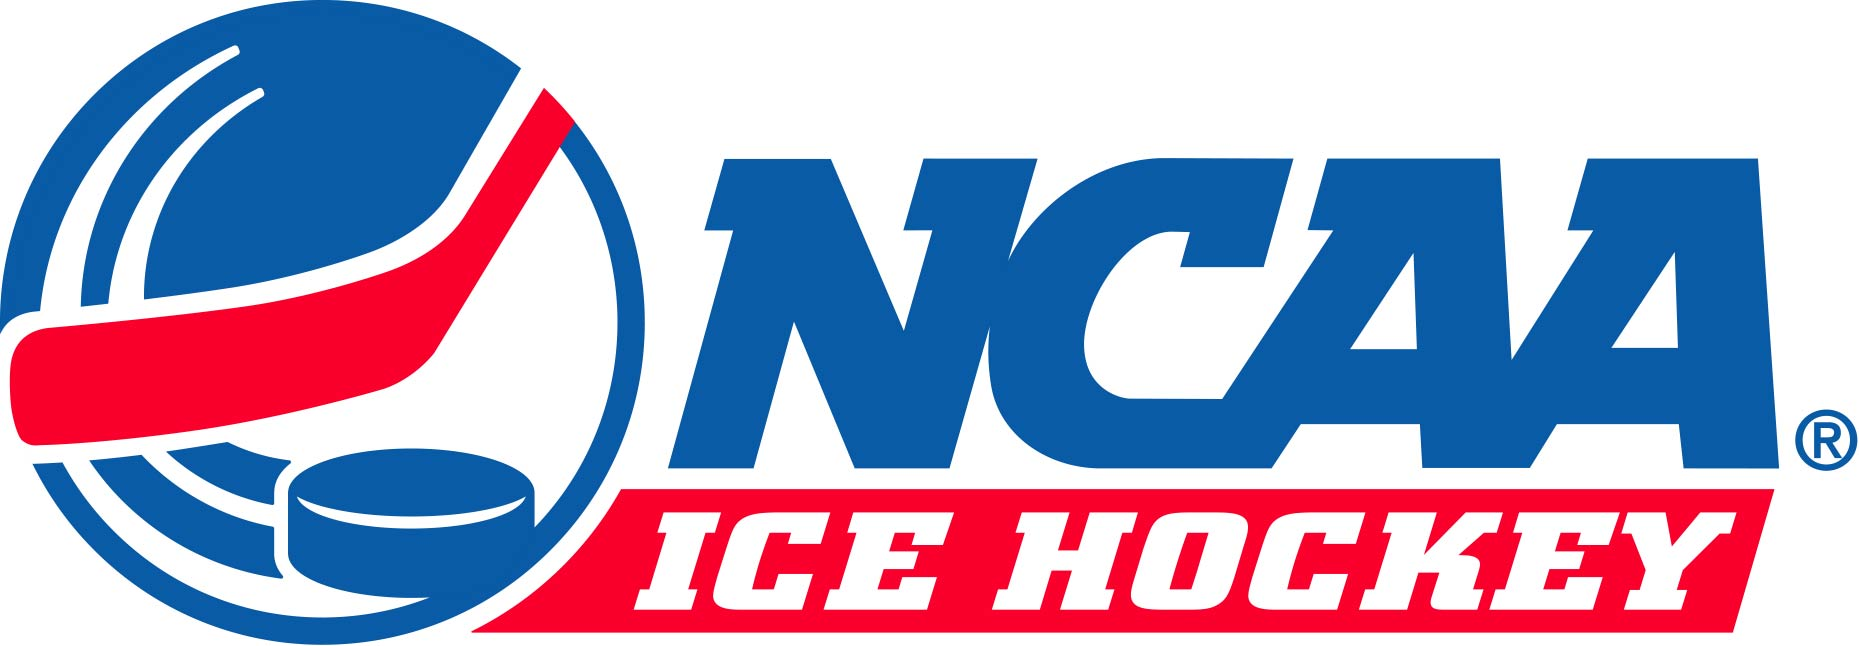 ncaahockey Catching the Torch   Bozon is Brilliant